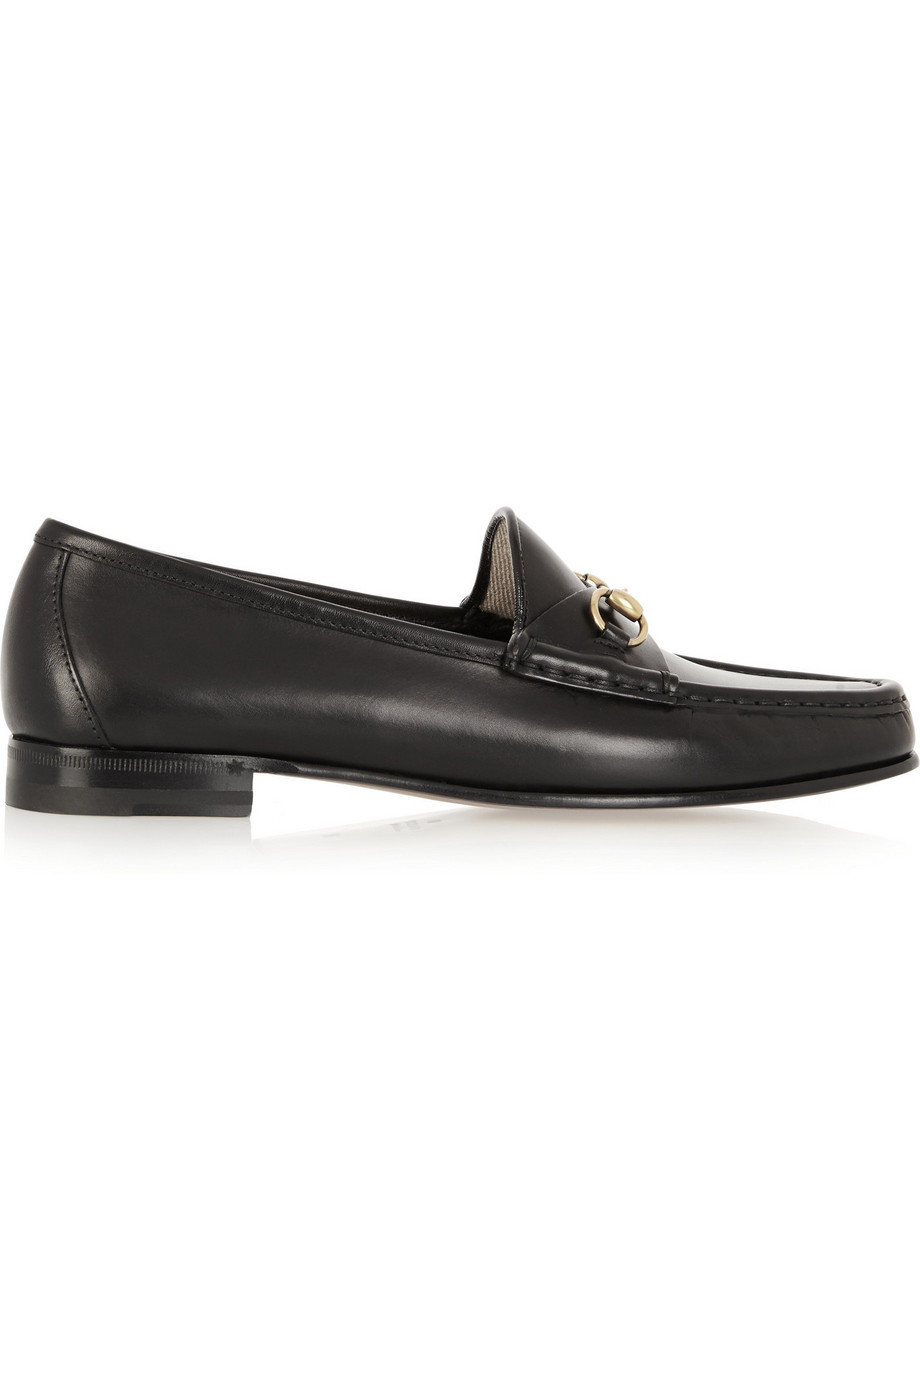 Gucci Horsebit-Detailed Leather Loafers, Black, Women's US Size: 4.5, Size: 35